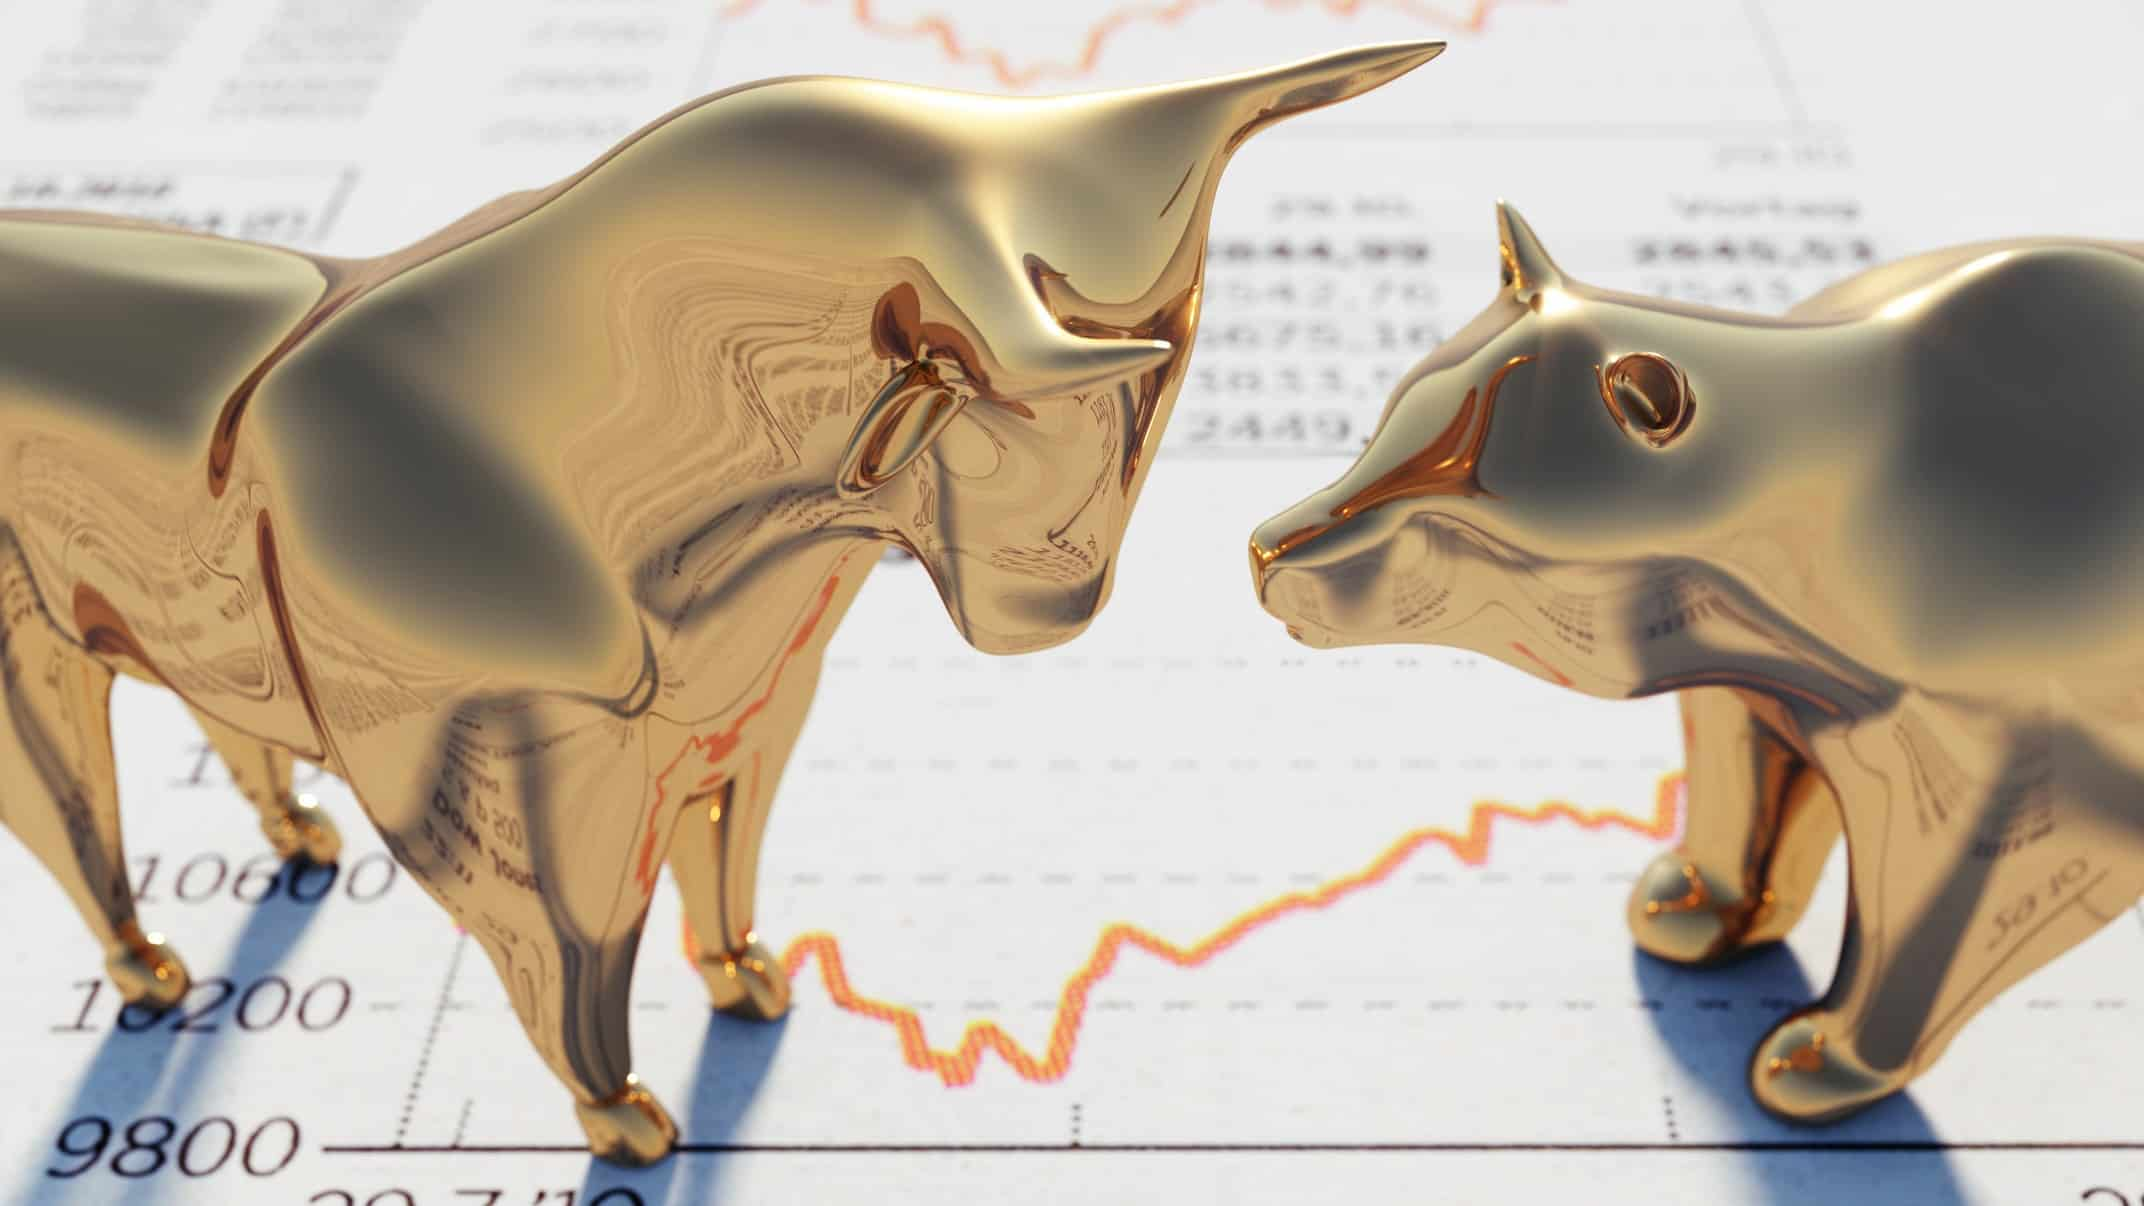 ASX gold stocks could rebound as experts tip high highs for gold in 2021